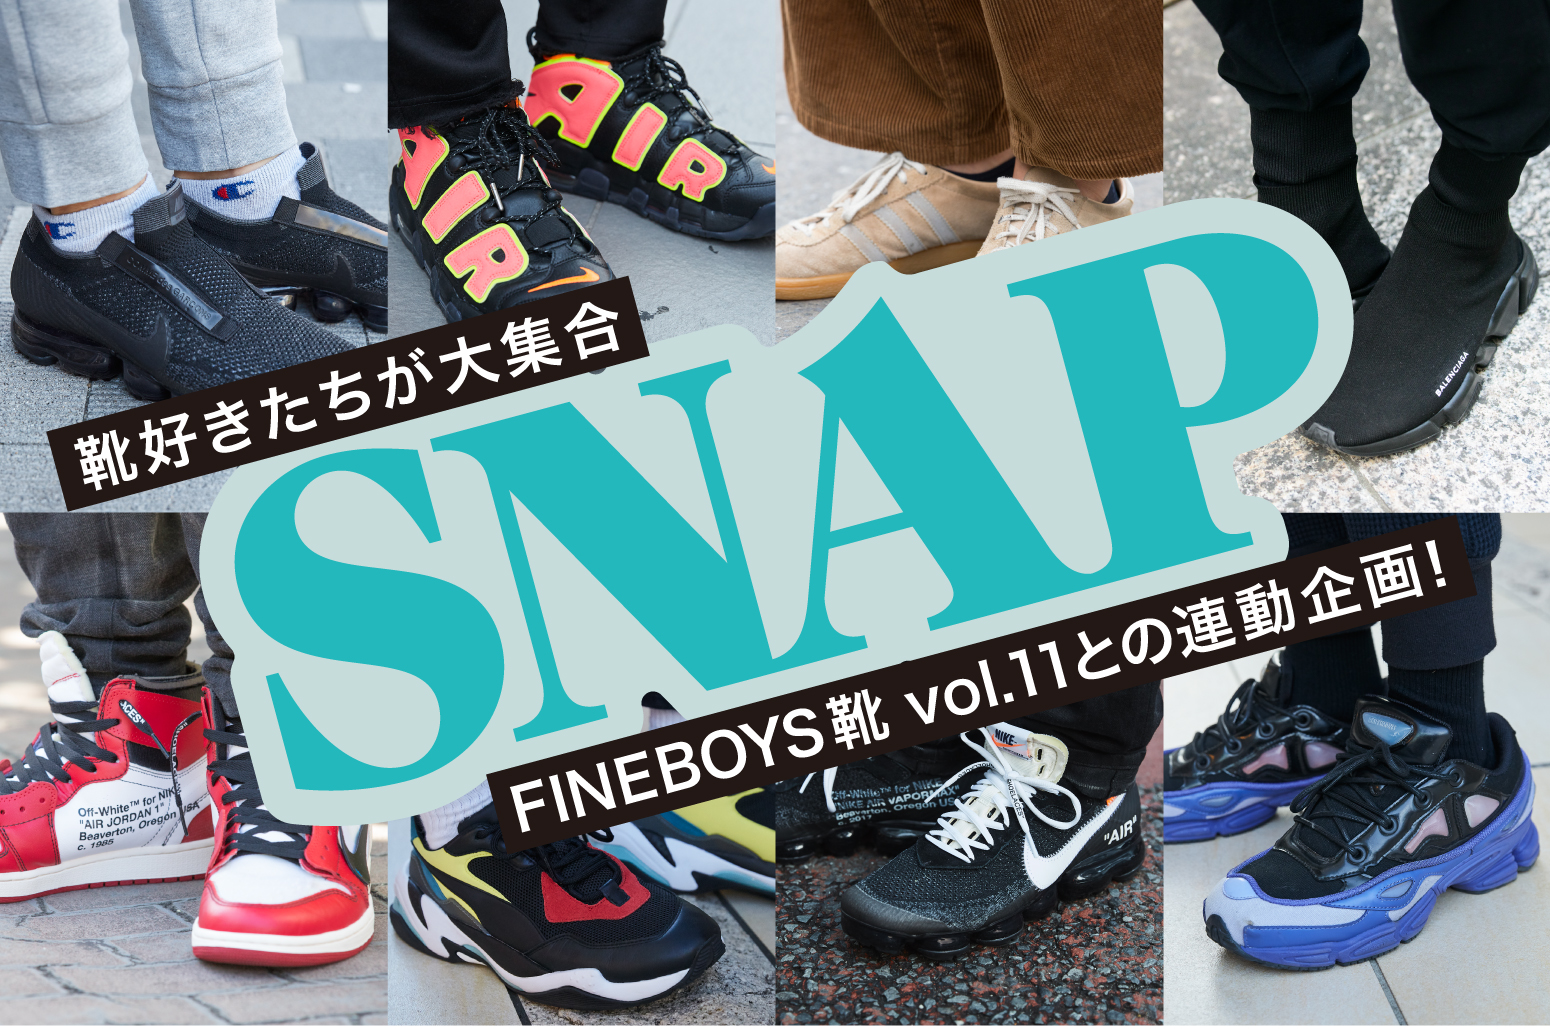 https://fineboys-online.jp/thegear/content/theme/img/org/article/619/main.jpg?t=1538128890